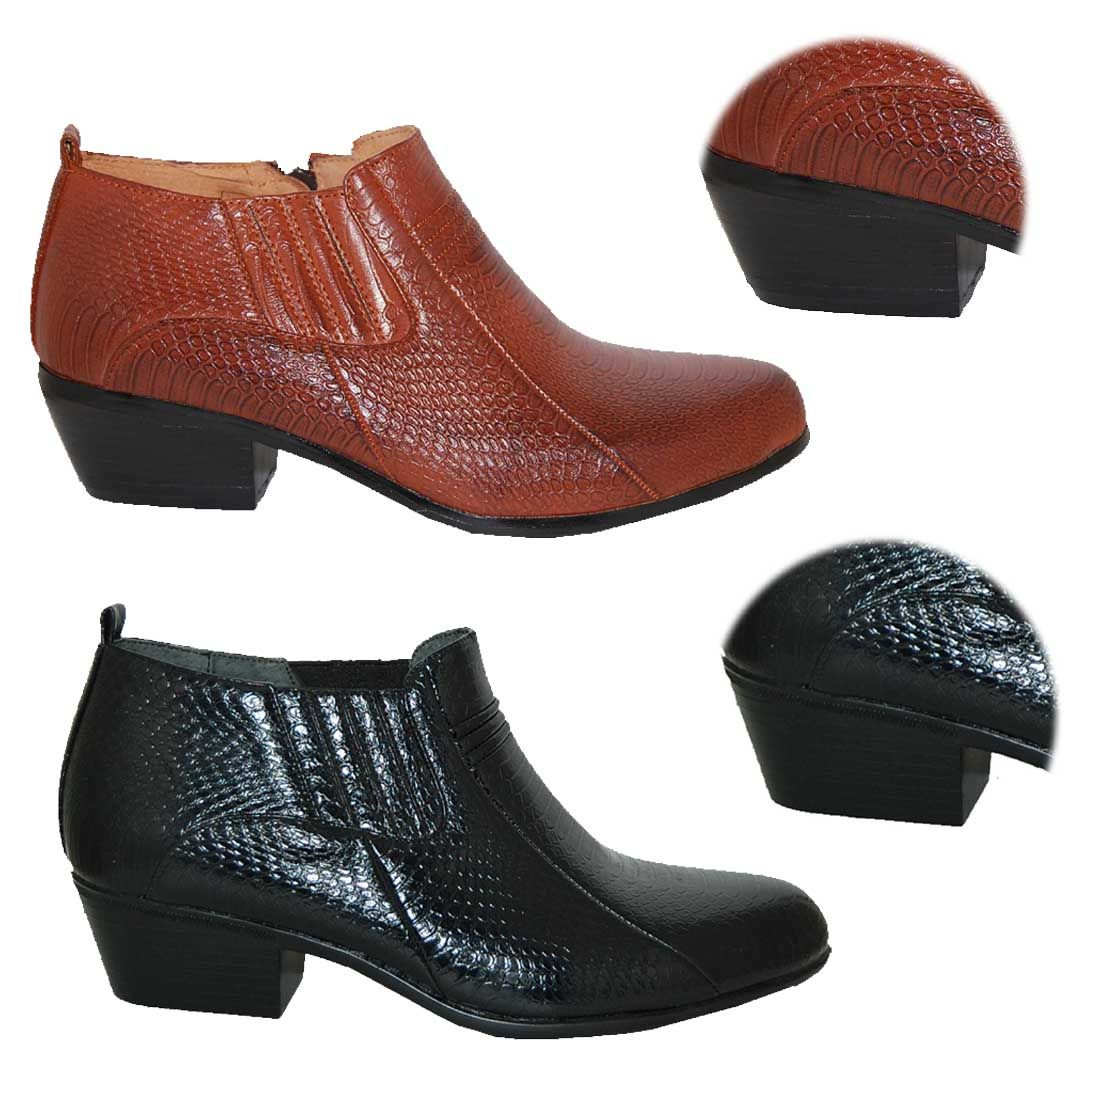 855eecd5f1f Dress to Impress with these 2 inch Cuban Heel for Men. LINK AT THE BOTTOM